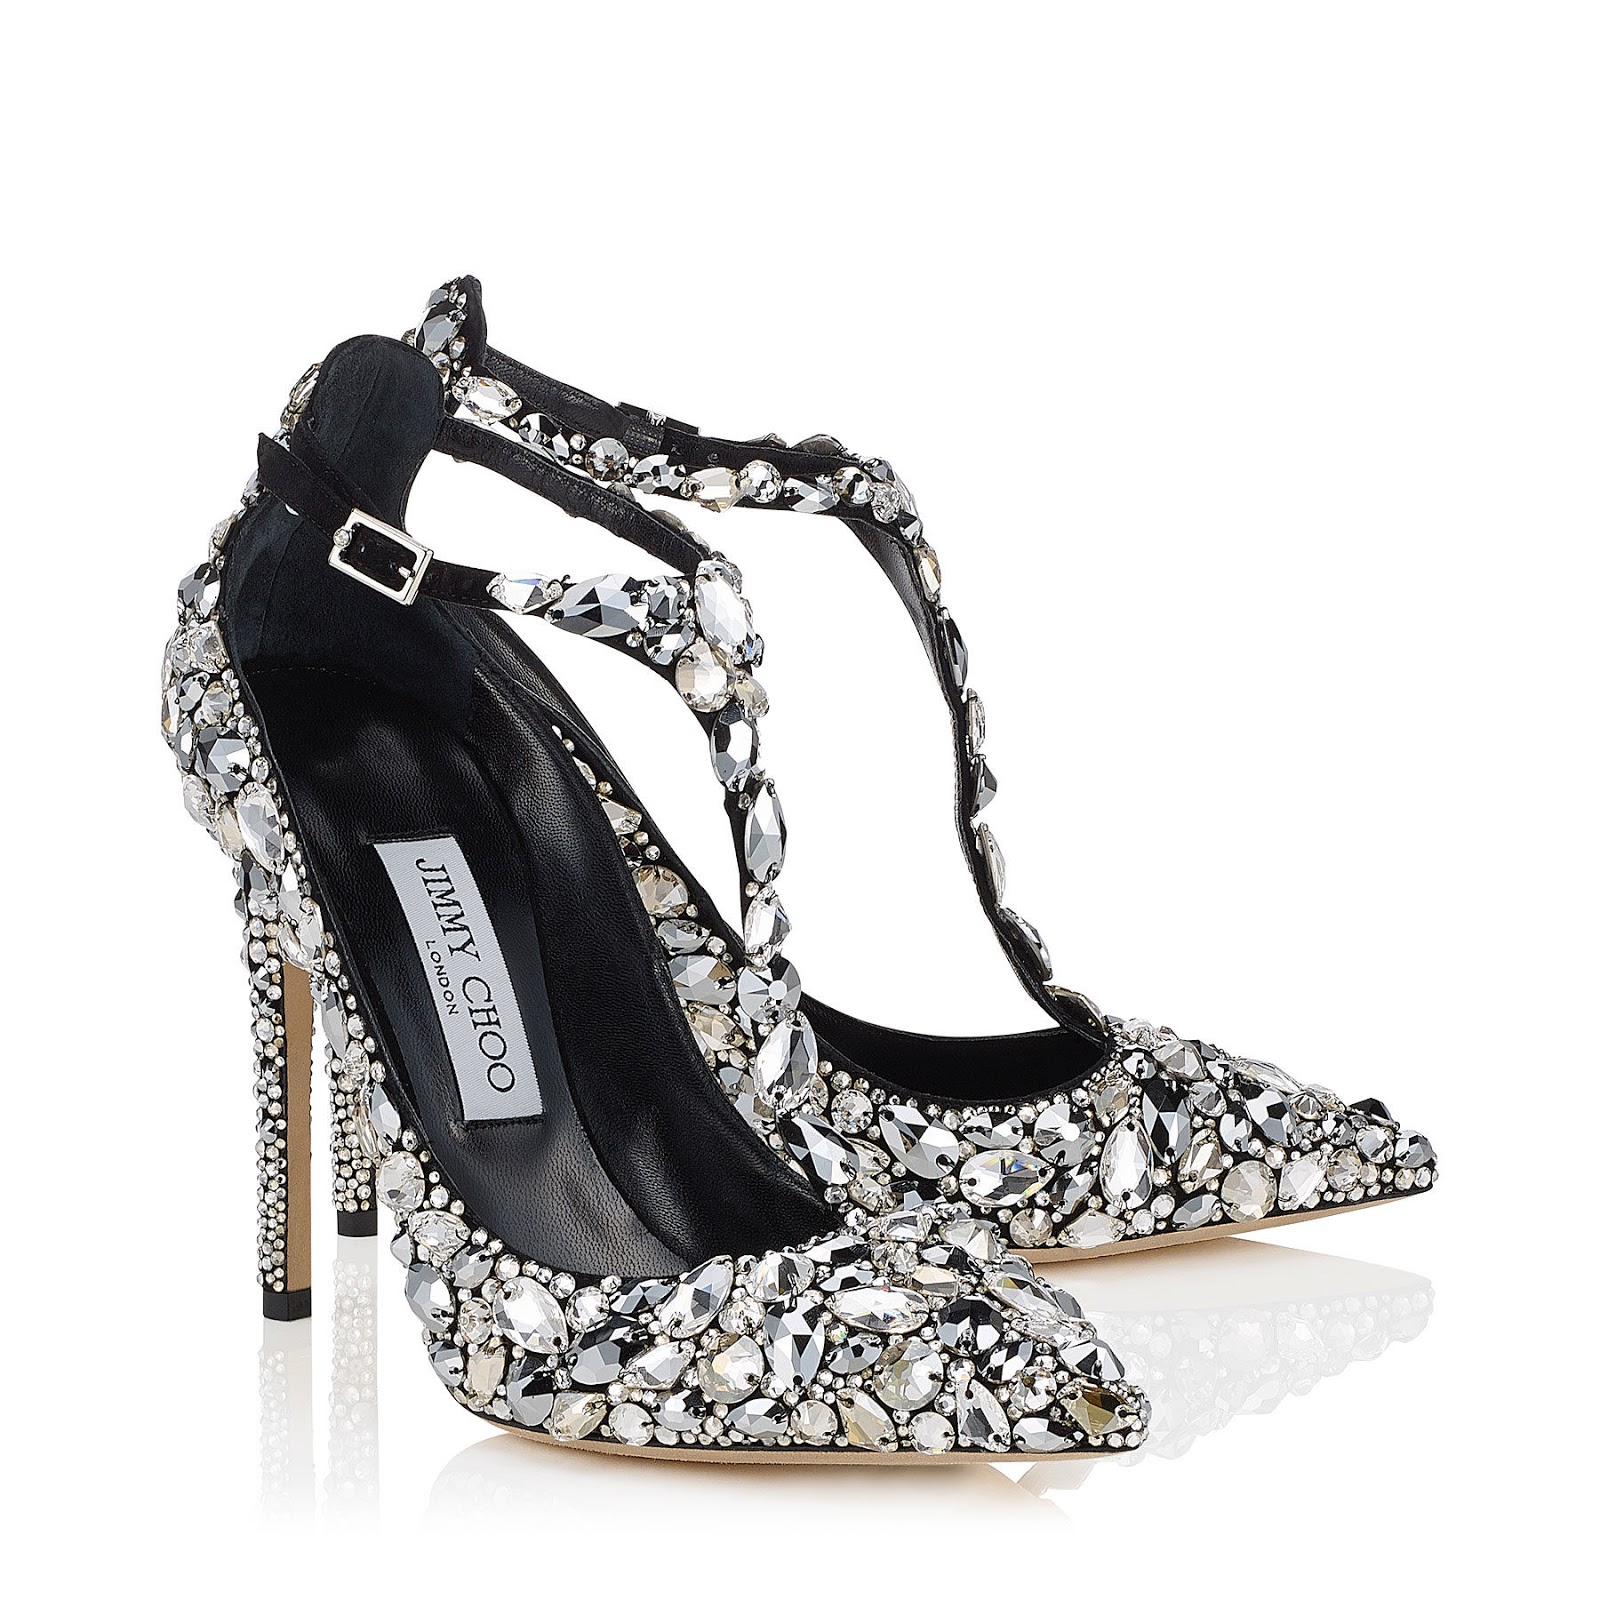 2b8326378de Jimmy Choo Storm Memento Limited Edition Shoe